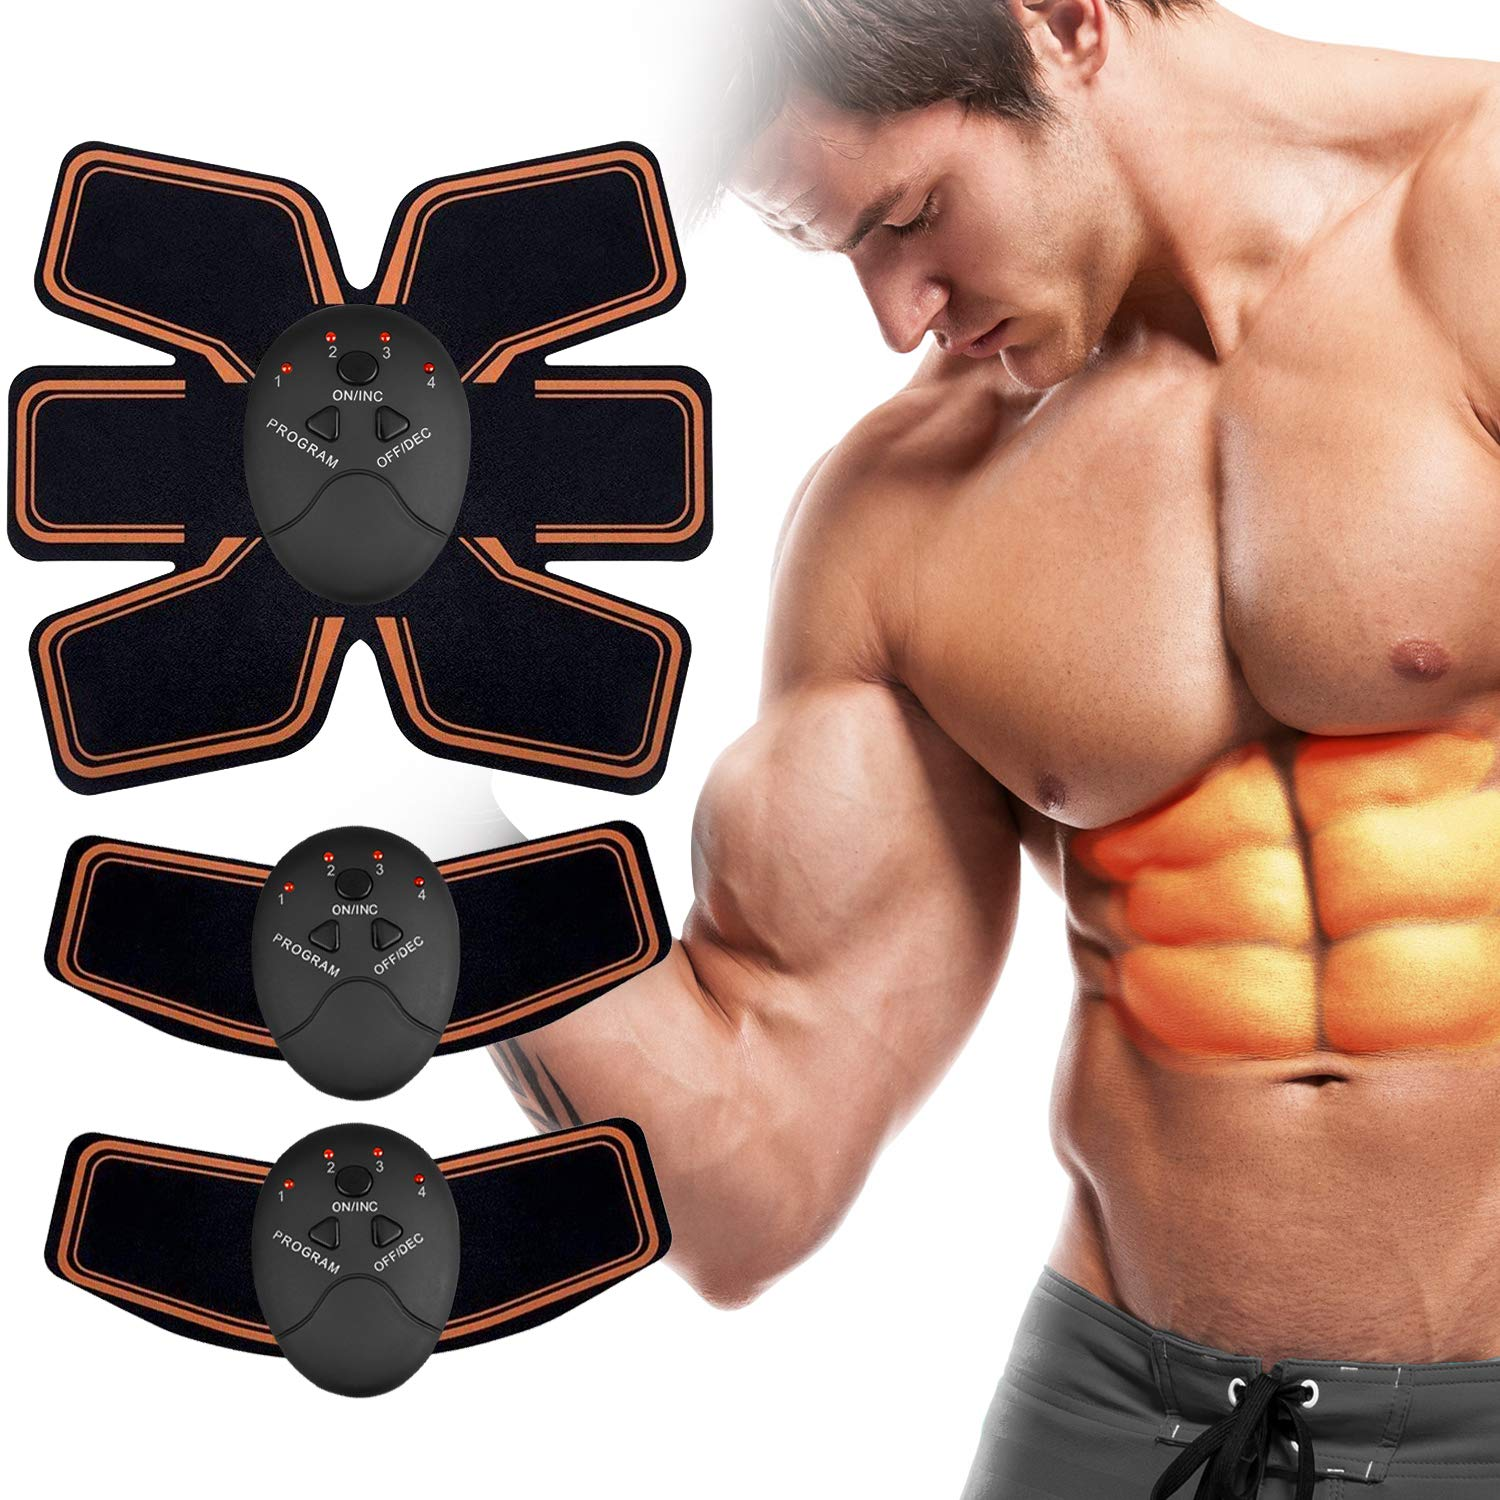 Abs Stimulator, Muscle Toner – Abs Stimulating Belt- Abdominal Toner- Training Device for Muscles- Wireless Portable to-Go Gym Device- Muscle Sculpting at Home- Fitness Equipment for at-Home Workouts